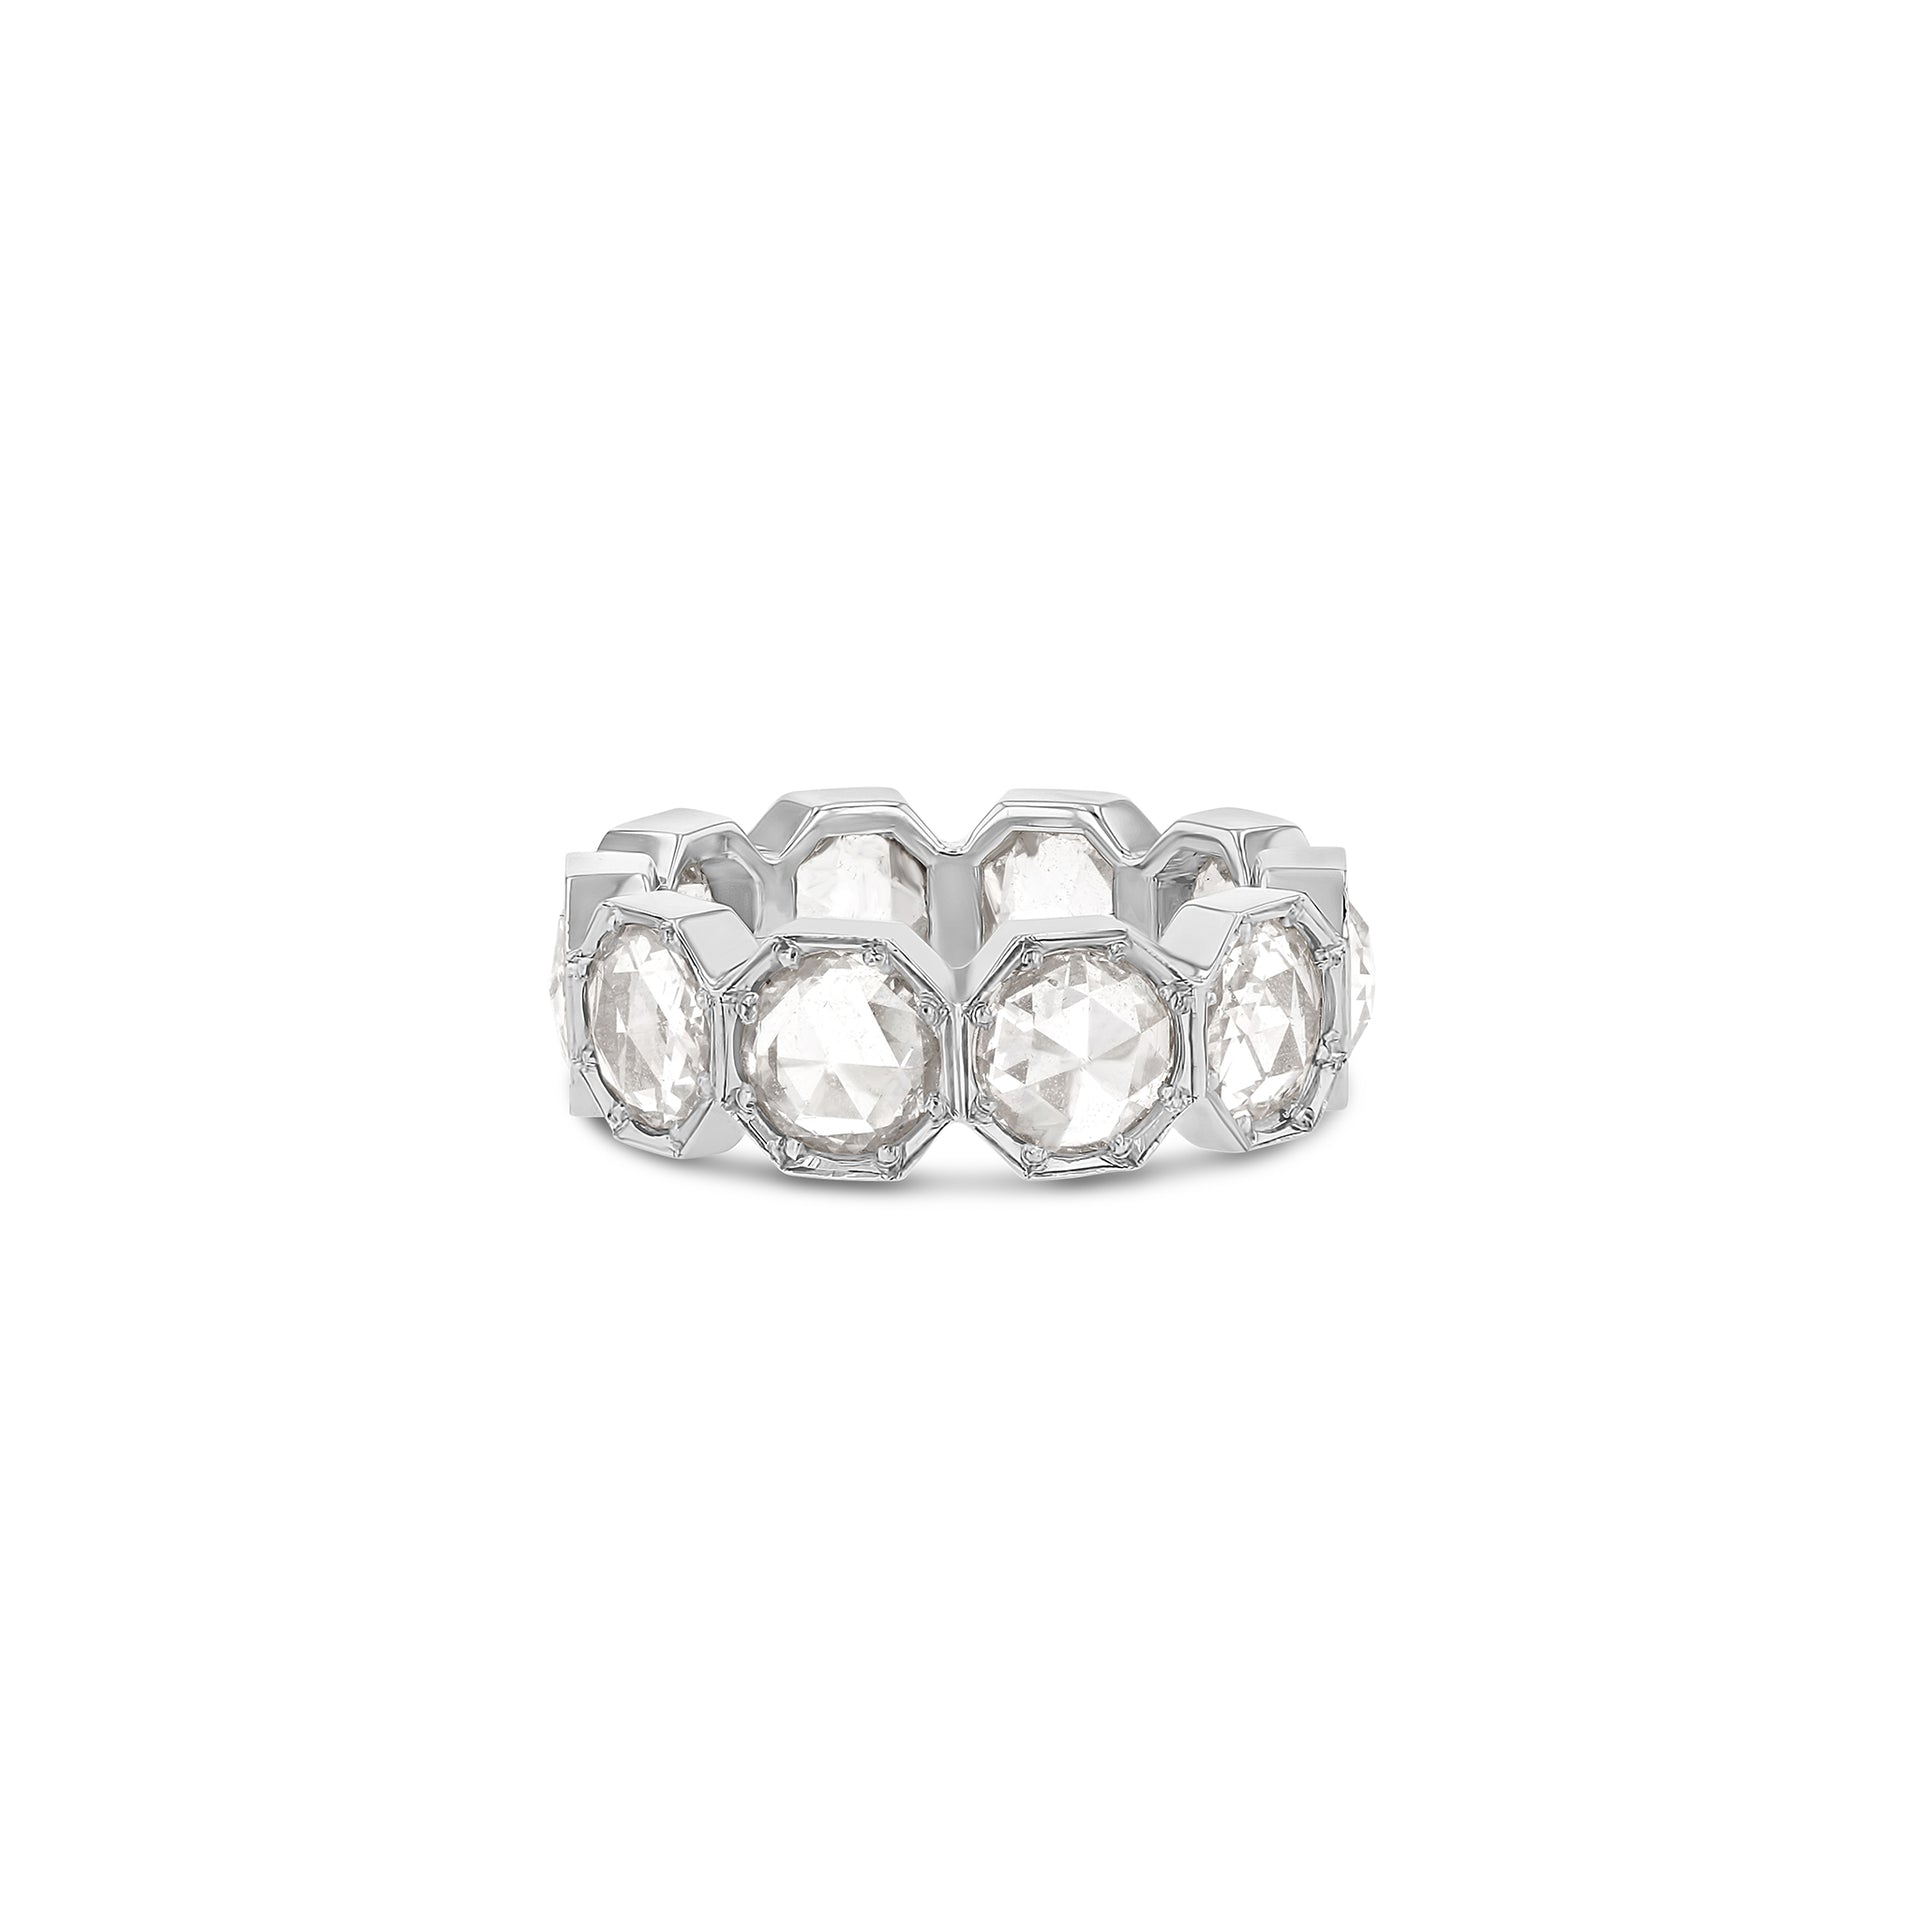 5mm Crown Bezel Diamond Eternity Ring